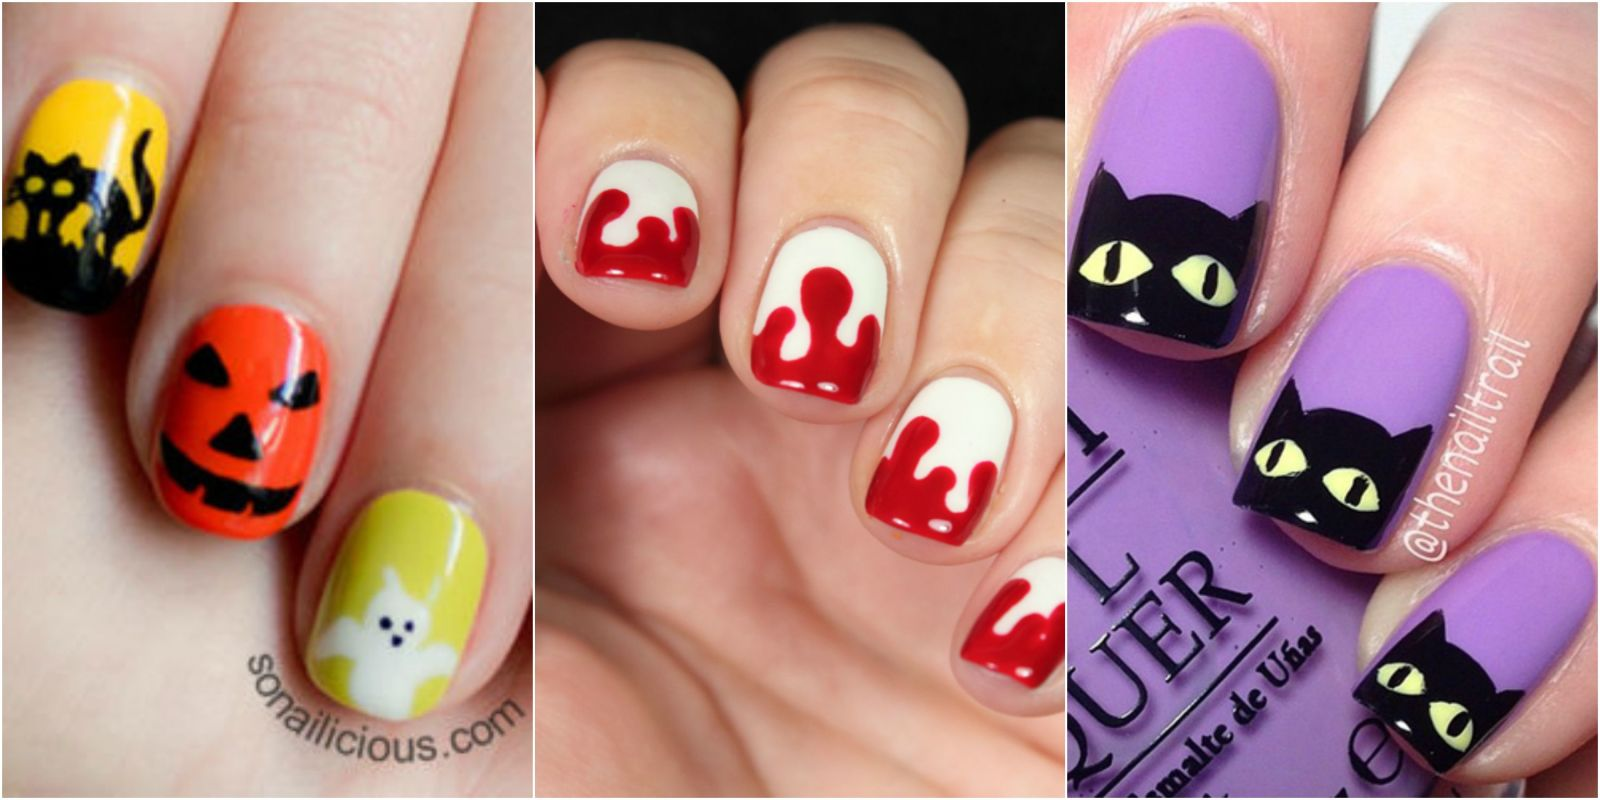 Nail Art Ideas: 15 Creative Spooky Halloween Nail Art Ideas